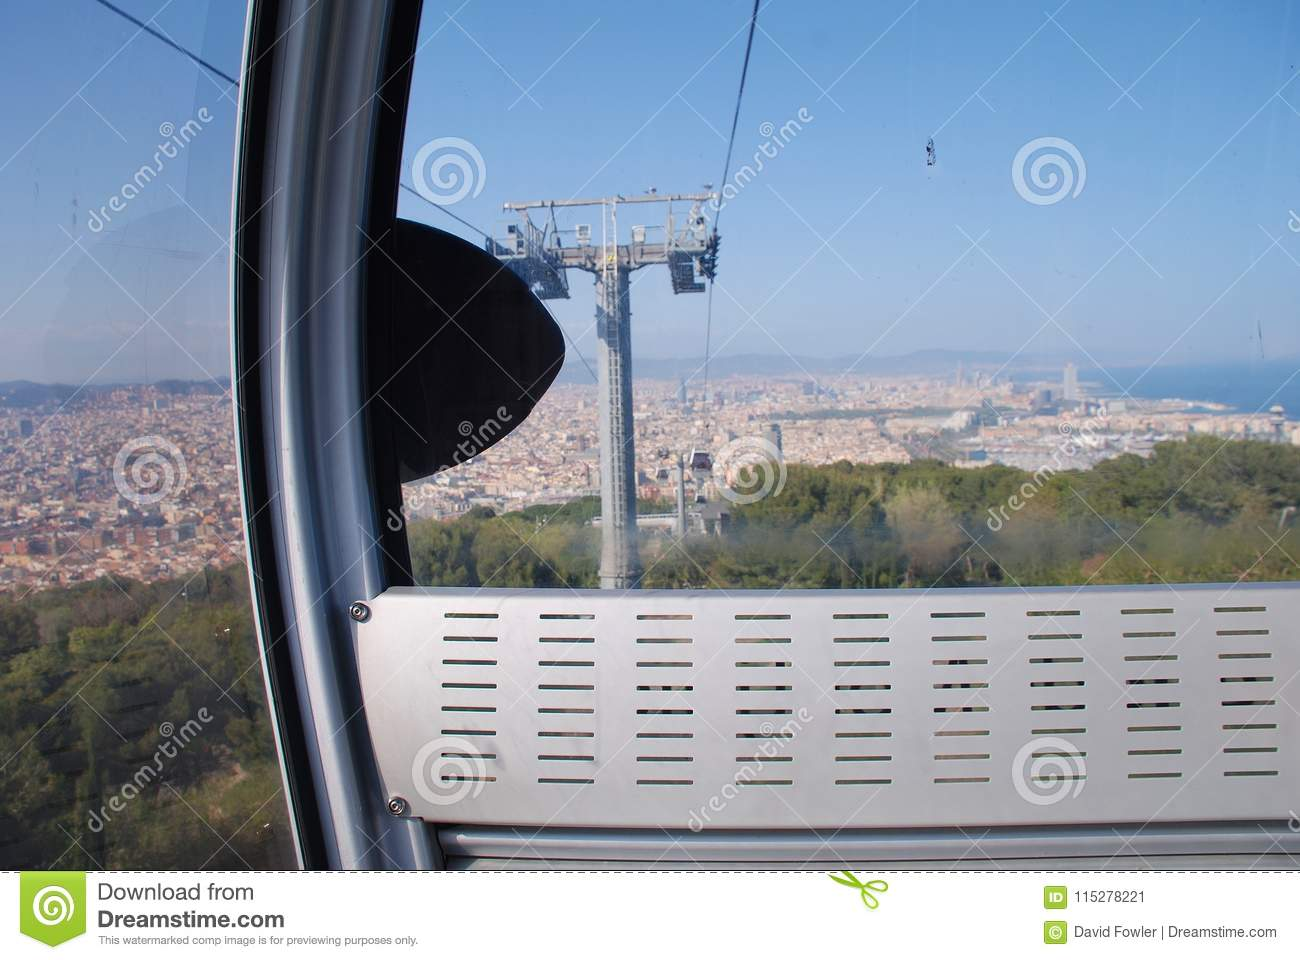 4e6a84c9f70 Inside a pod on the Teleferic cable car line at Montjuic hill in Barcelona